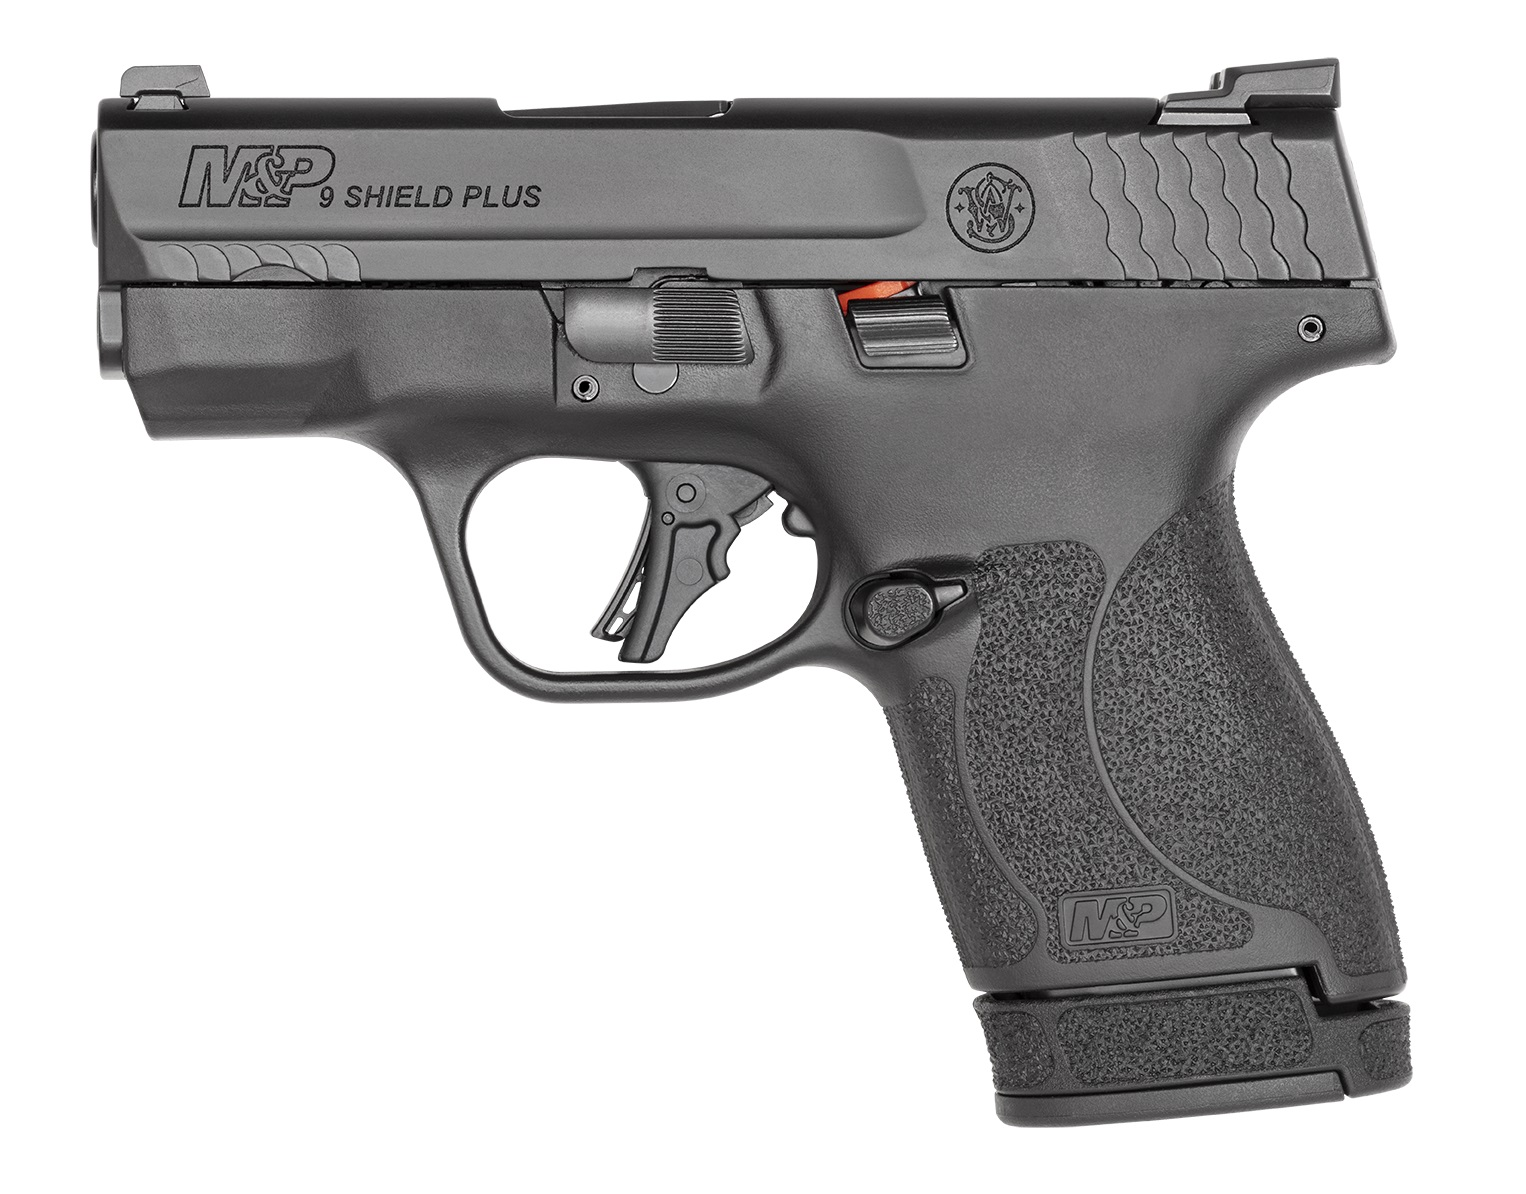 Smith and Wesson M&P9 SHIELD PLUS 9MM